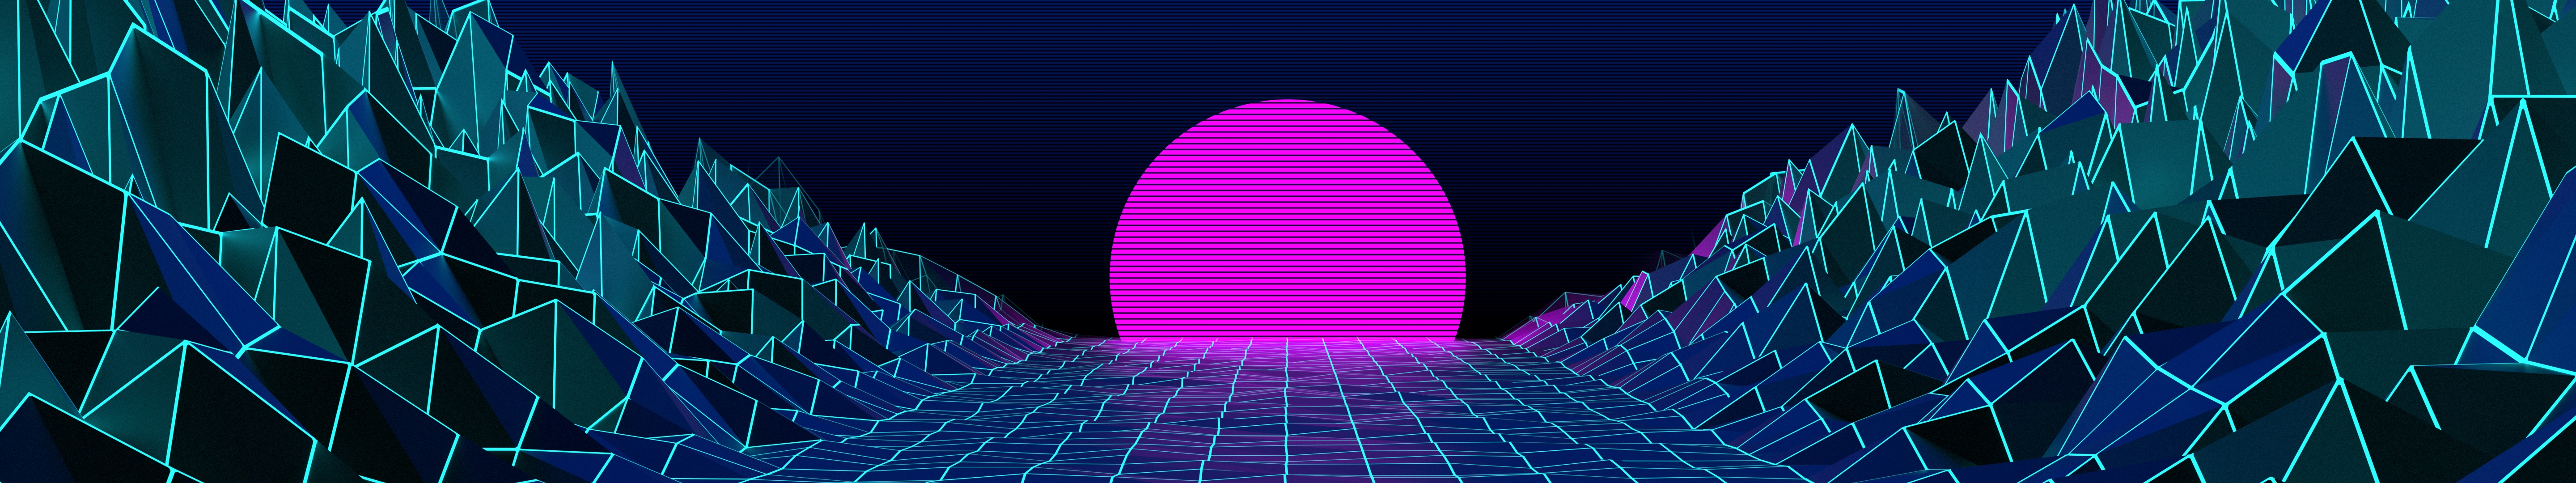 General 5760x1080 synthwave retrowave Retrowave scanlines grid mountains